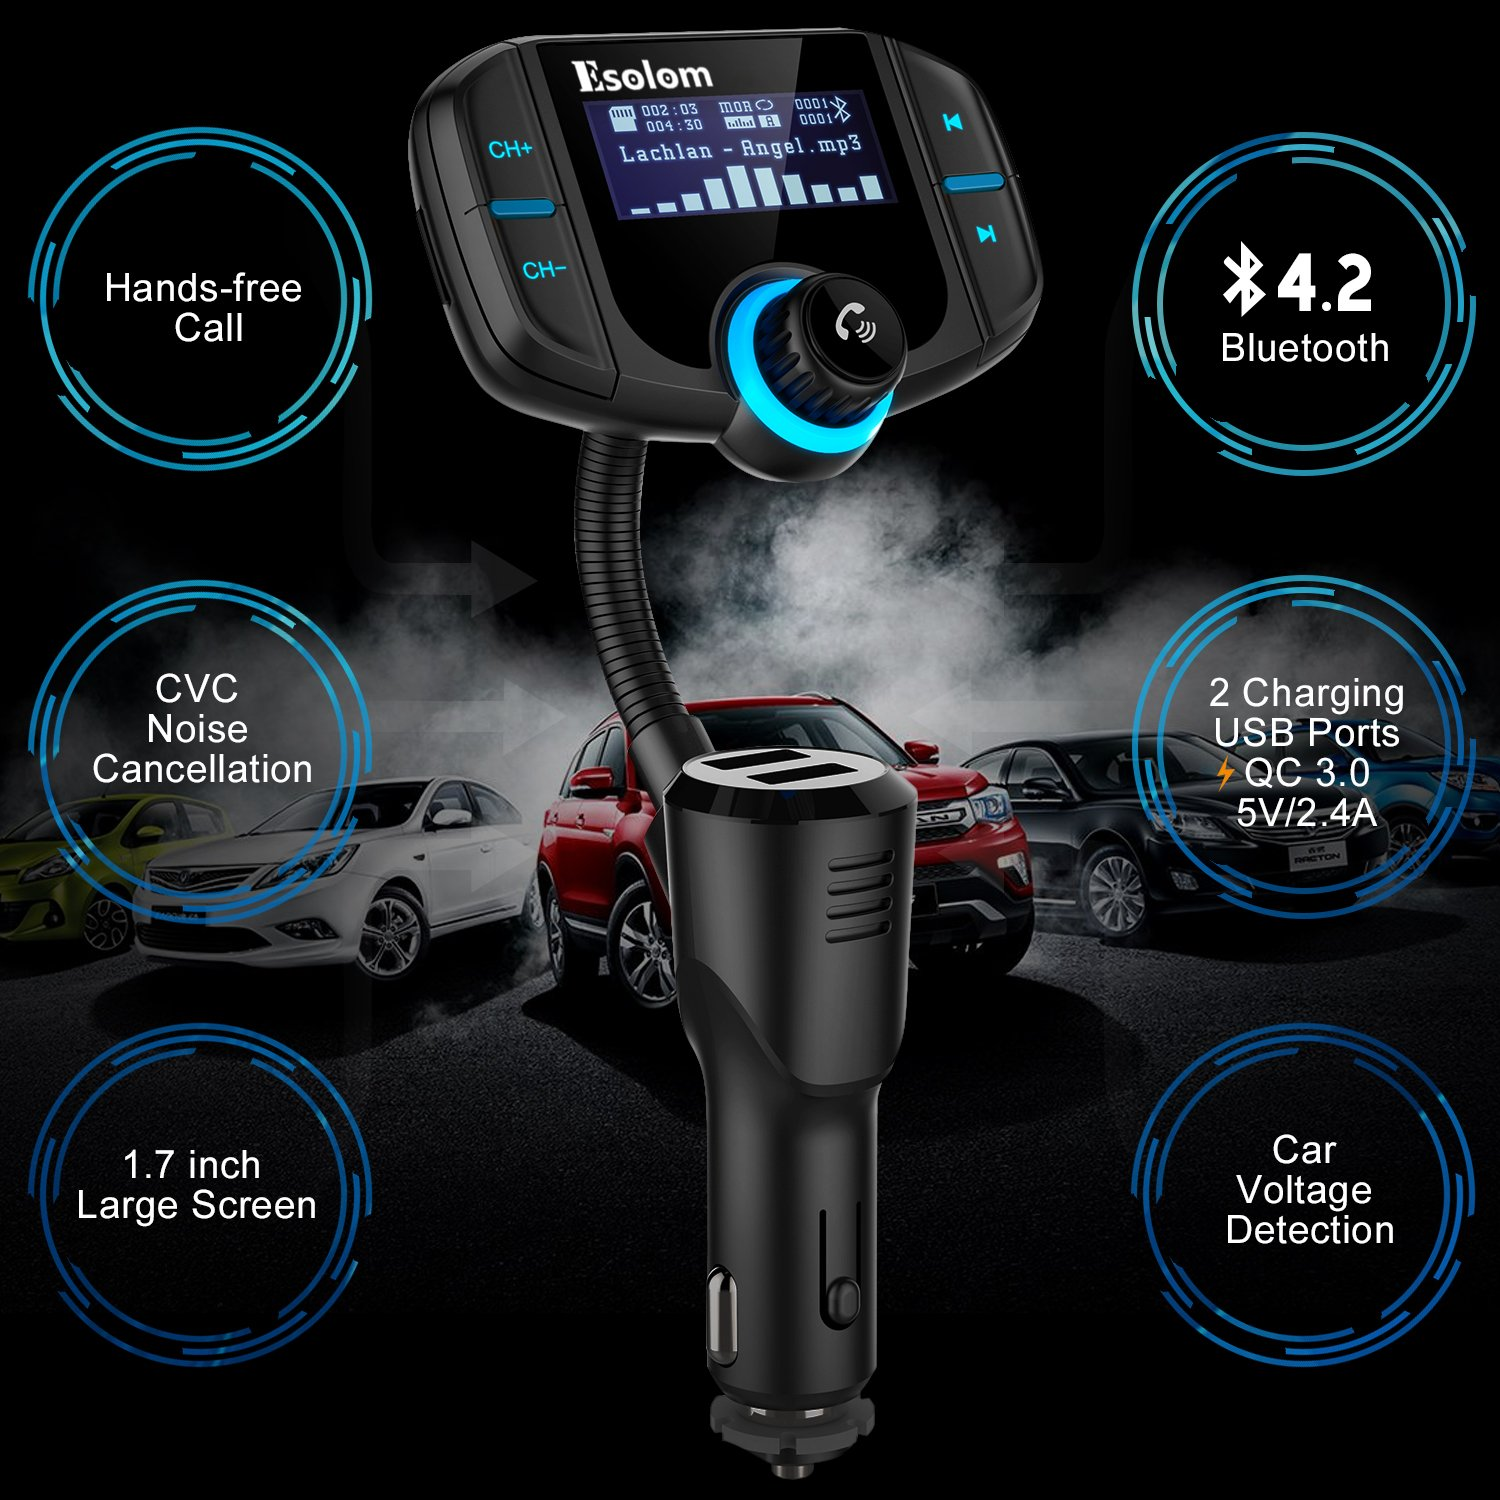 """Bluetooth FM Transmitter, ESOLOM Wireless Car Stereo Radio Adapter Receiver, Hands-free Calling Car Kit with 1.7"""" Display, QC3.0 & Smart 2.4A Dual USB Ports, Support TF Card, AUX Input/Output by ESOLOM (Image #2)"""